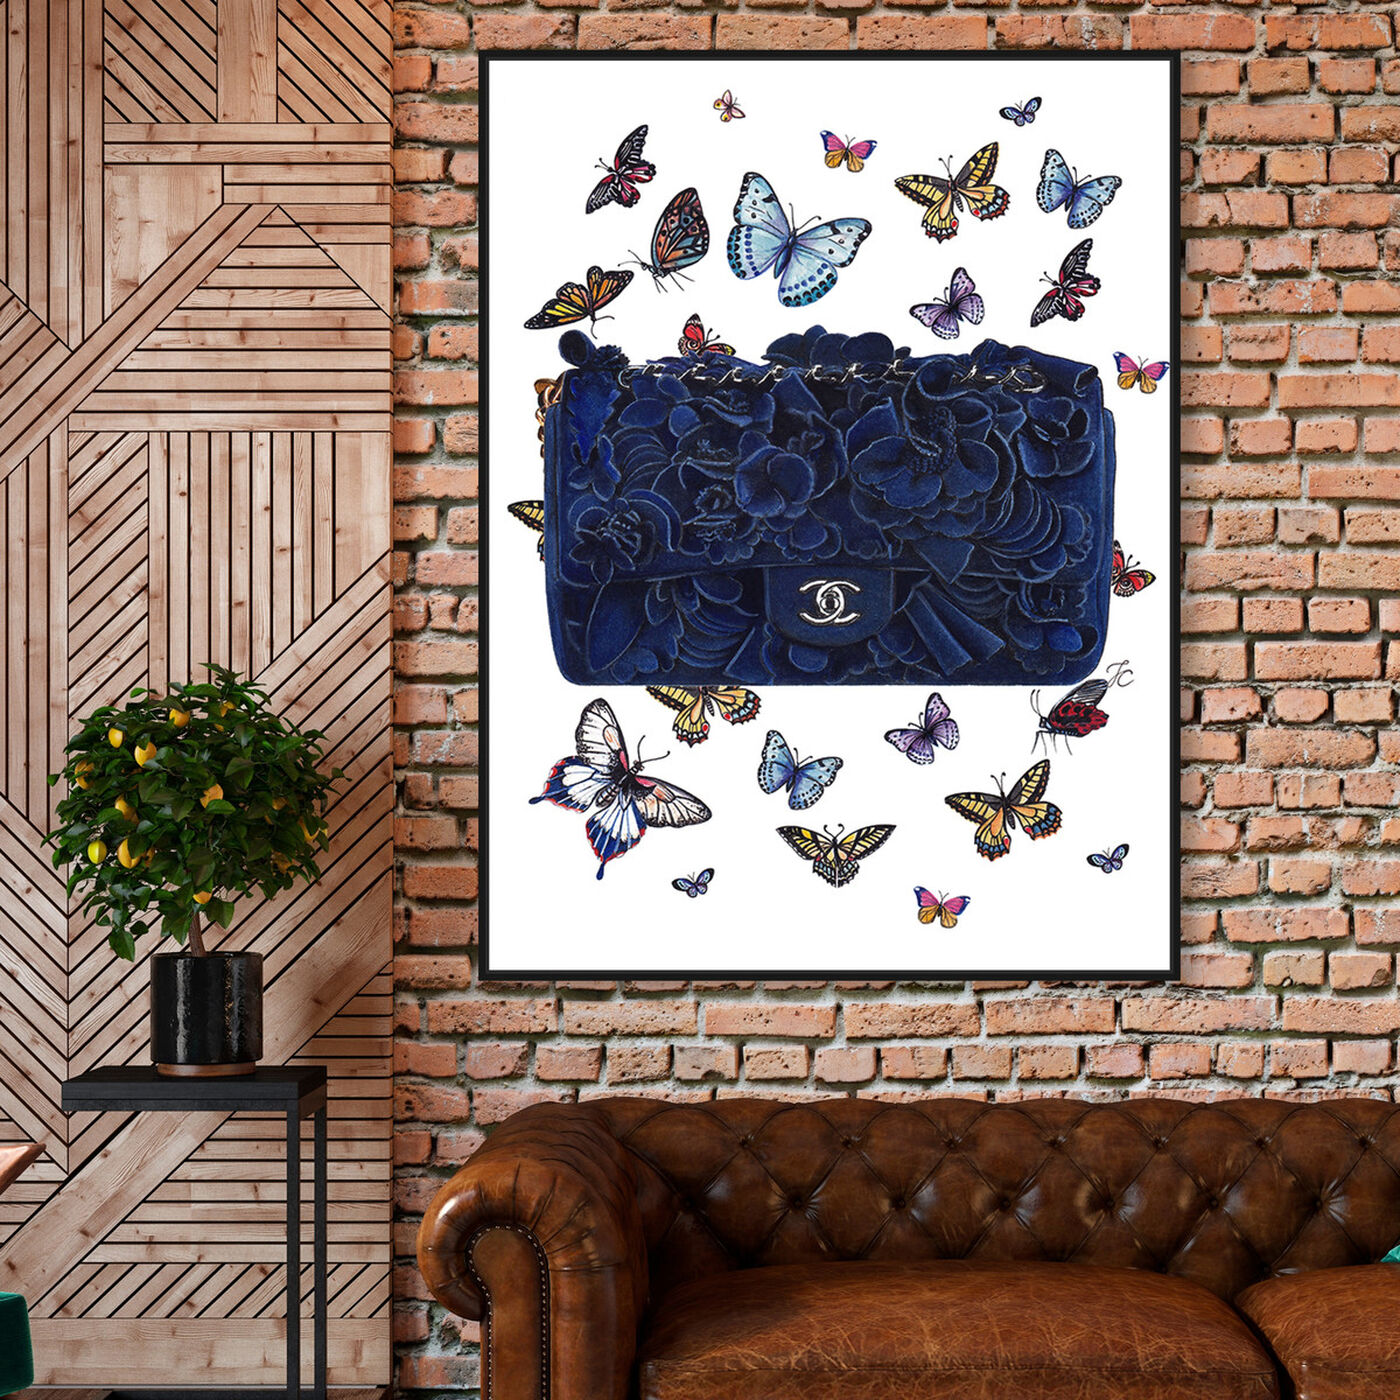 Hanging view of Doll Memories - Butterflies Blue Bag featuring fashion and glam and handbags art.